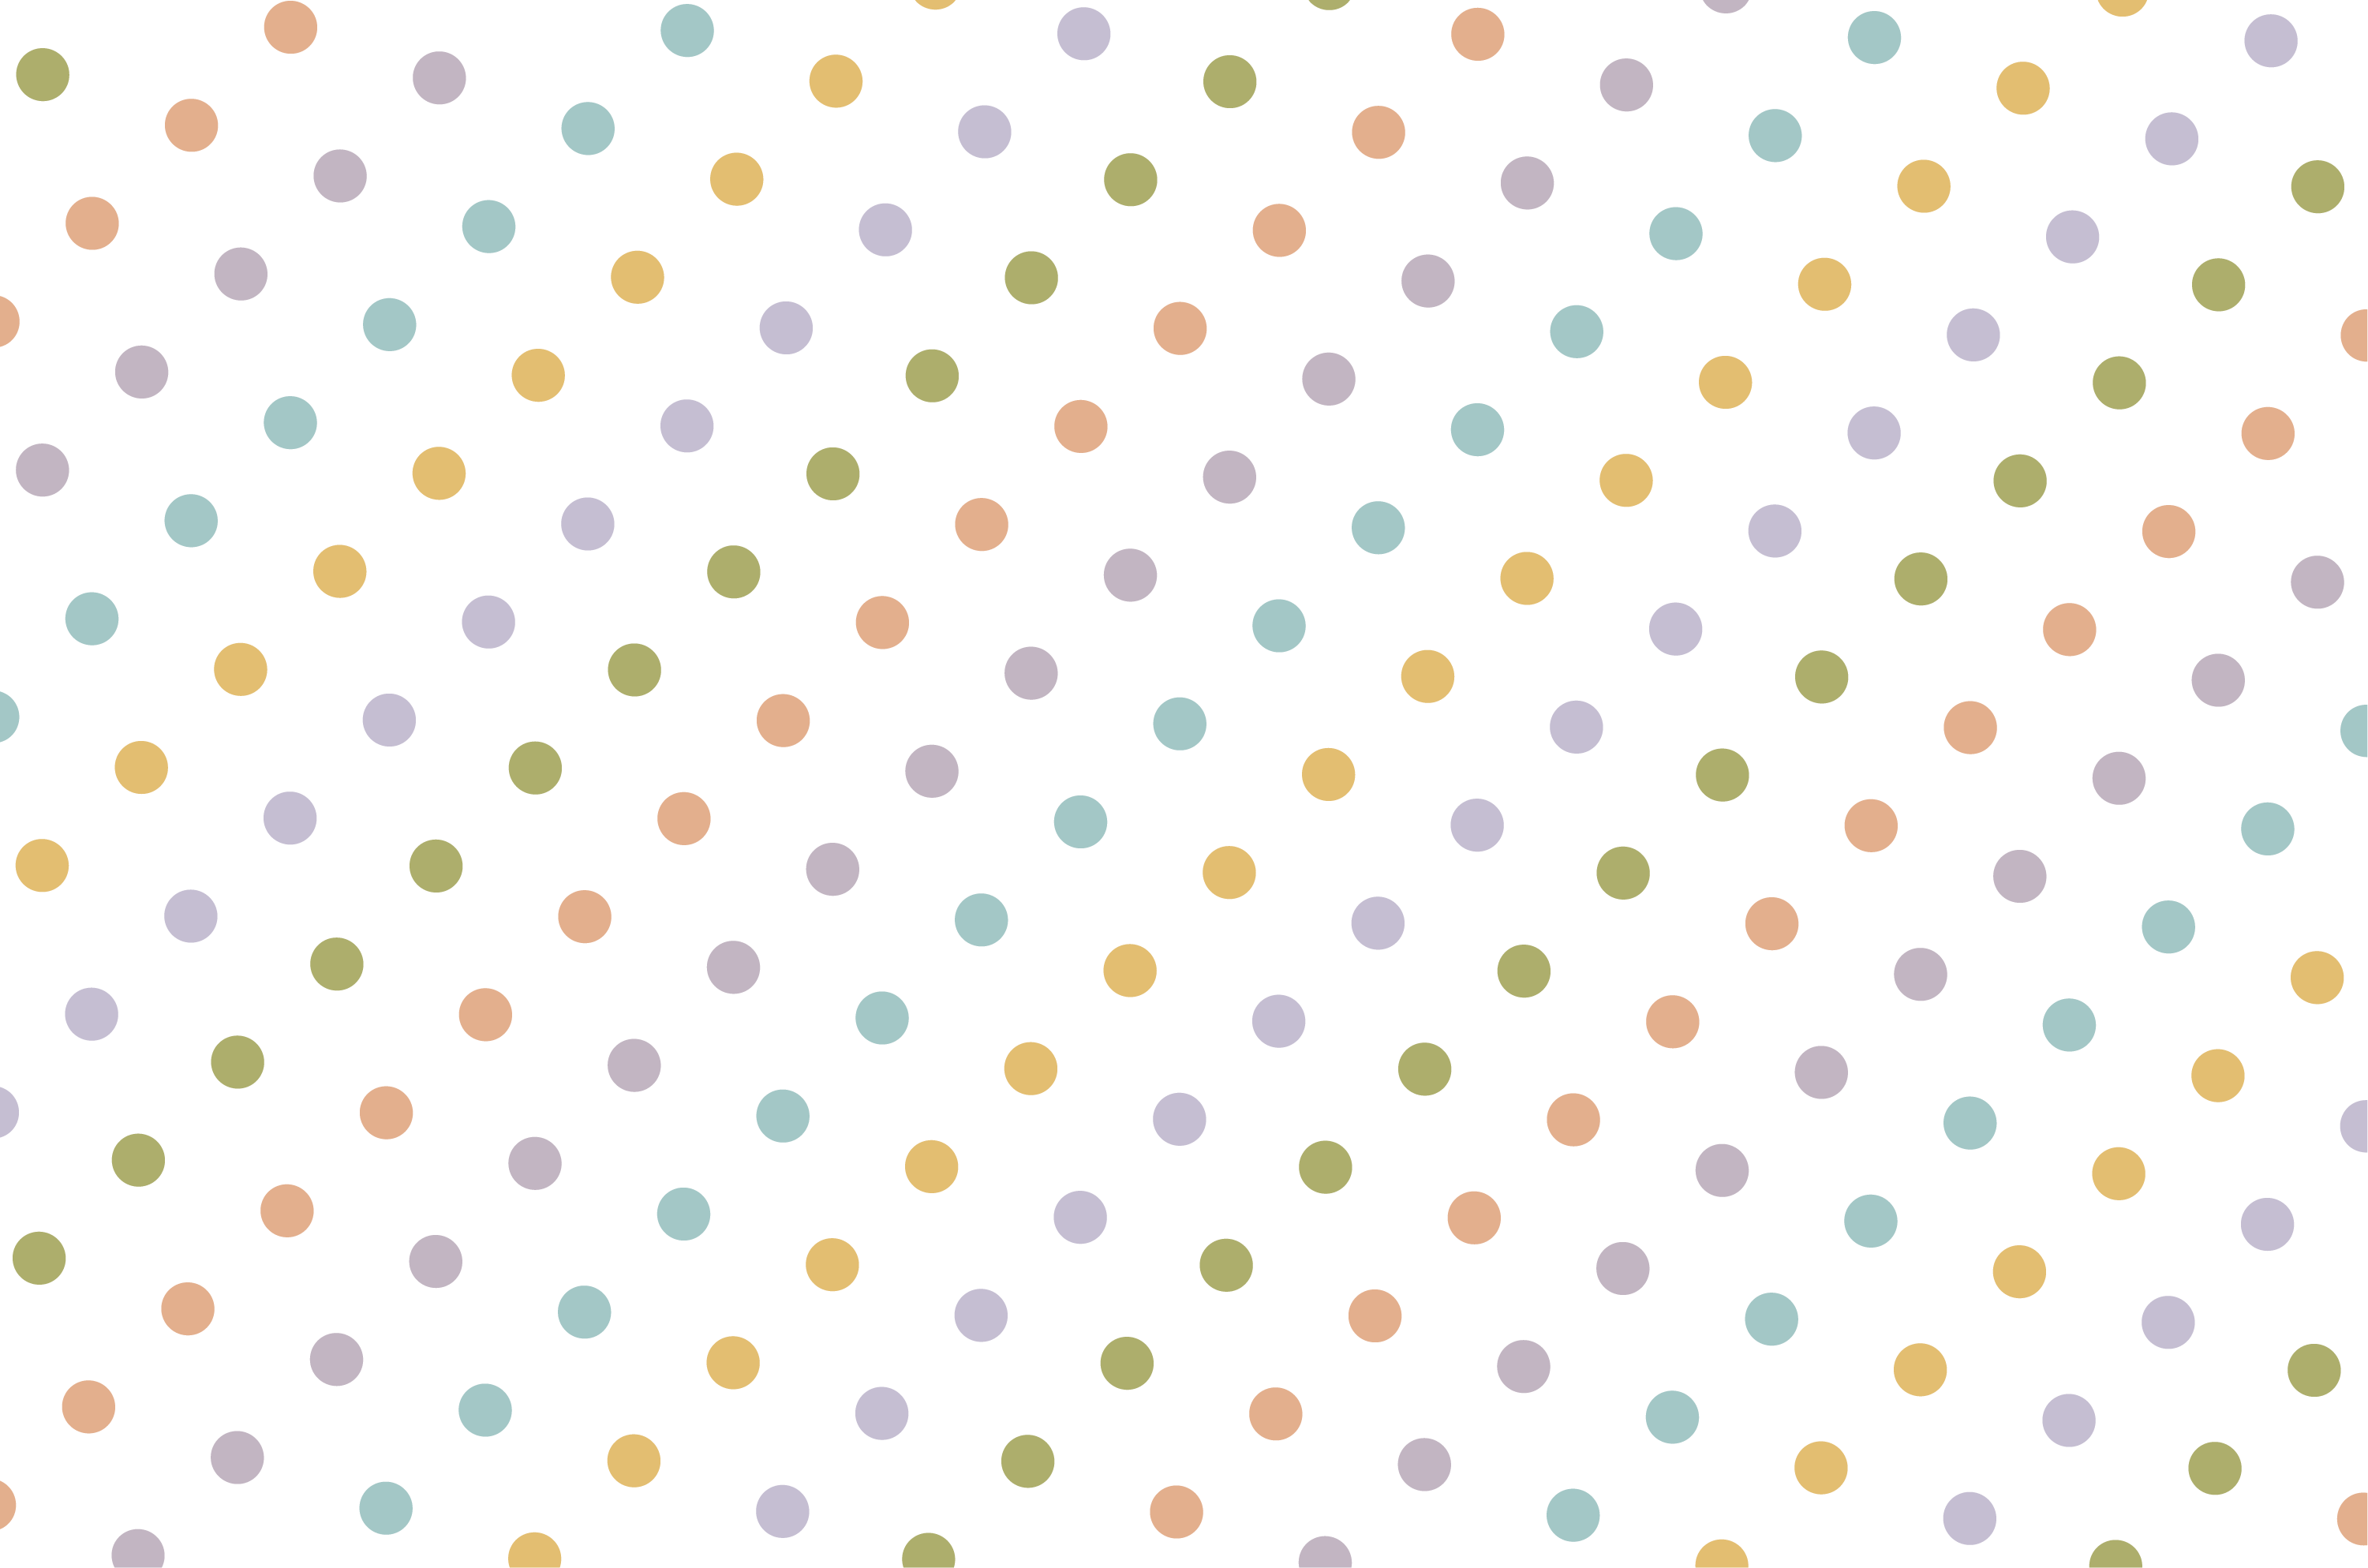 Polka dot background clipart clipart images gallery for free.